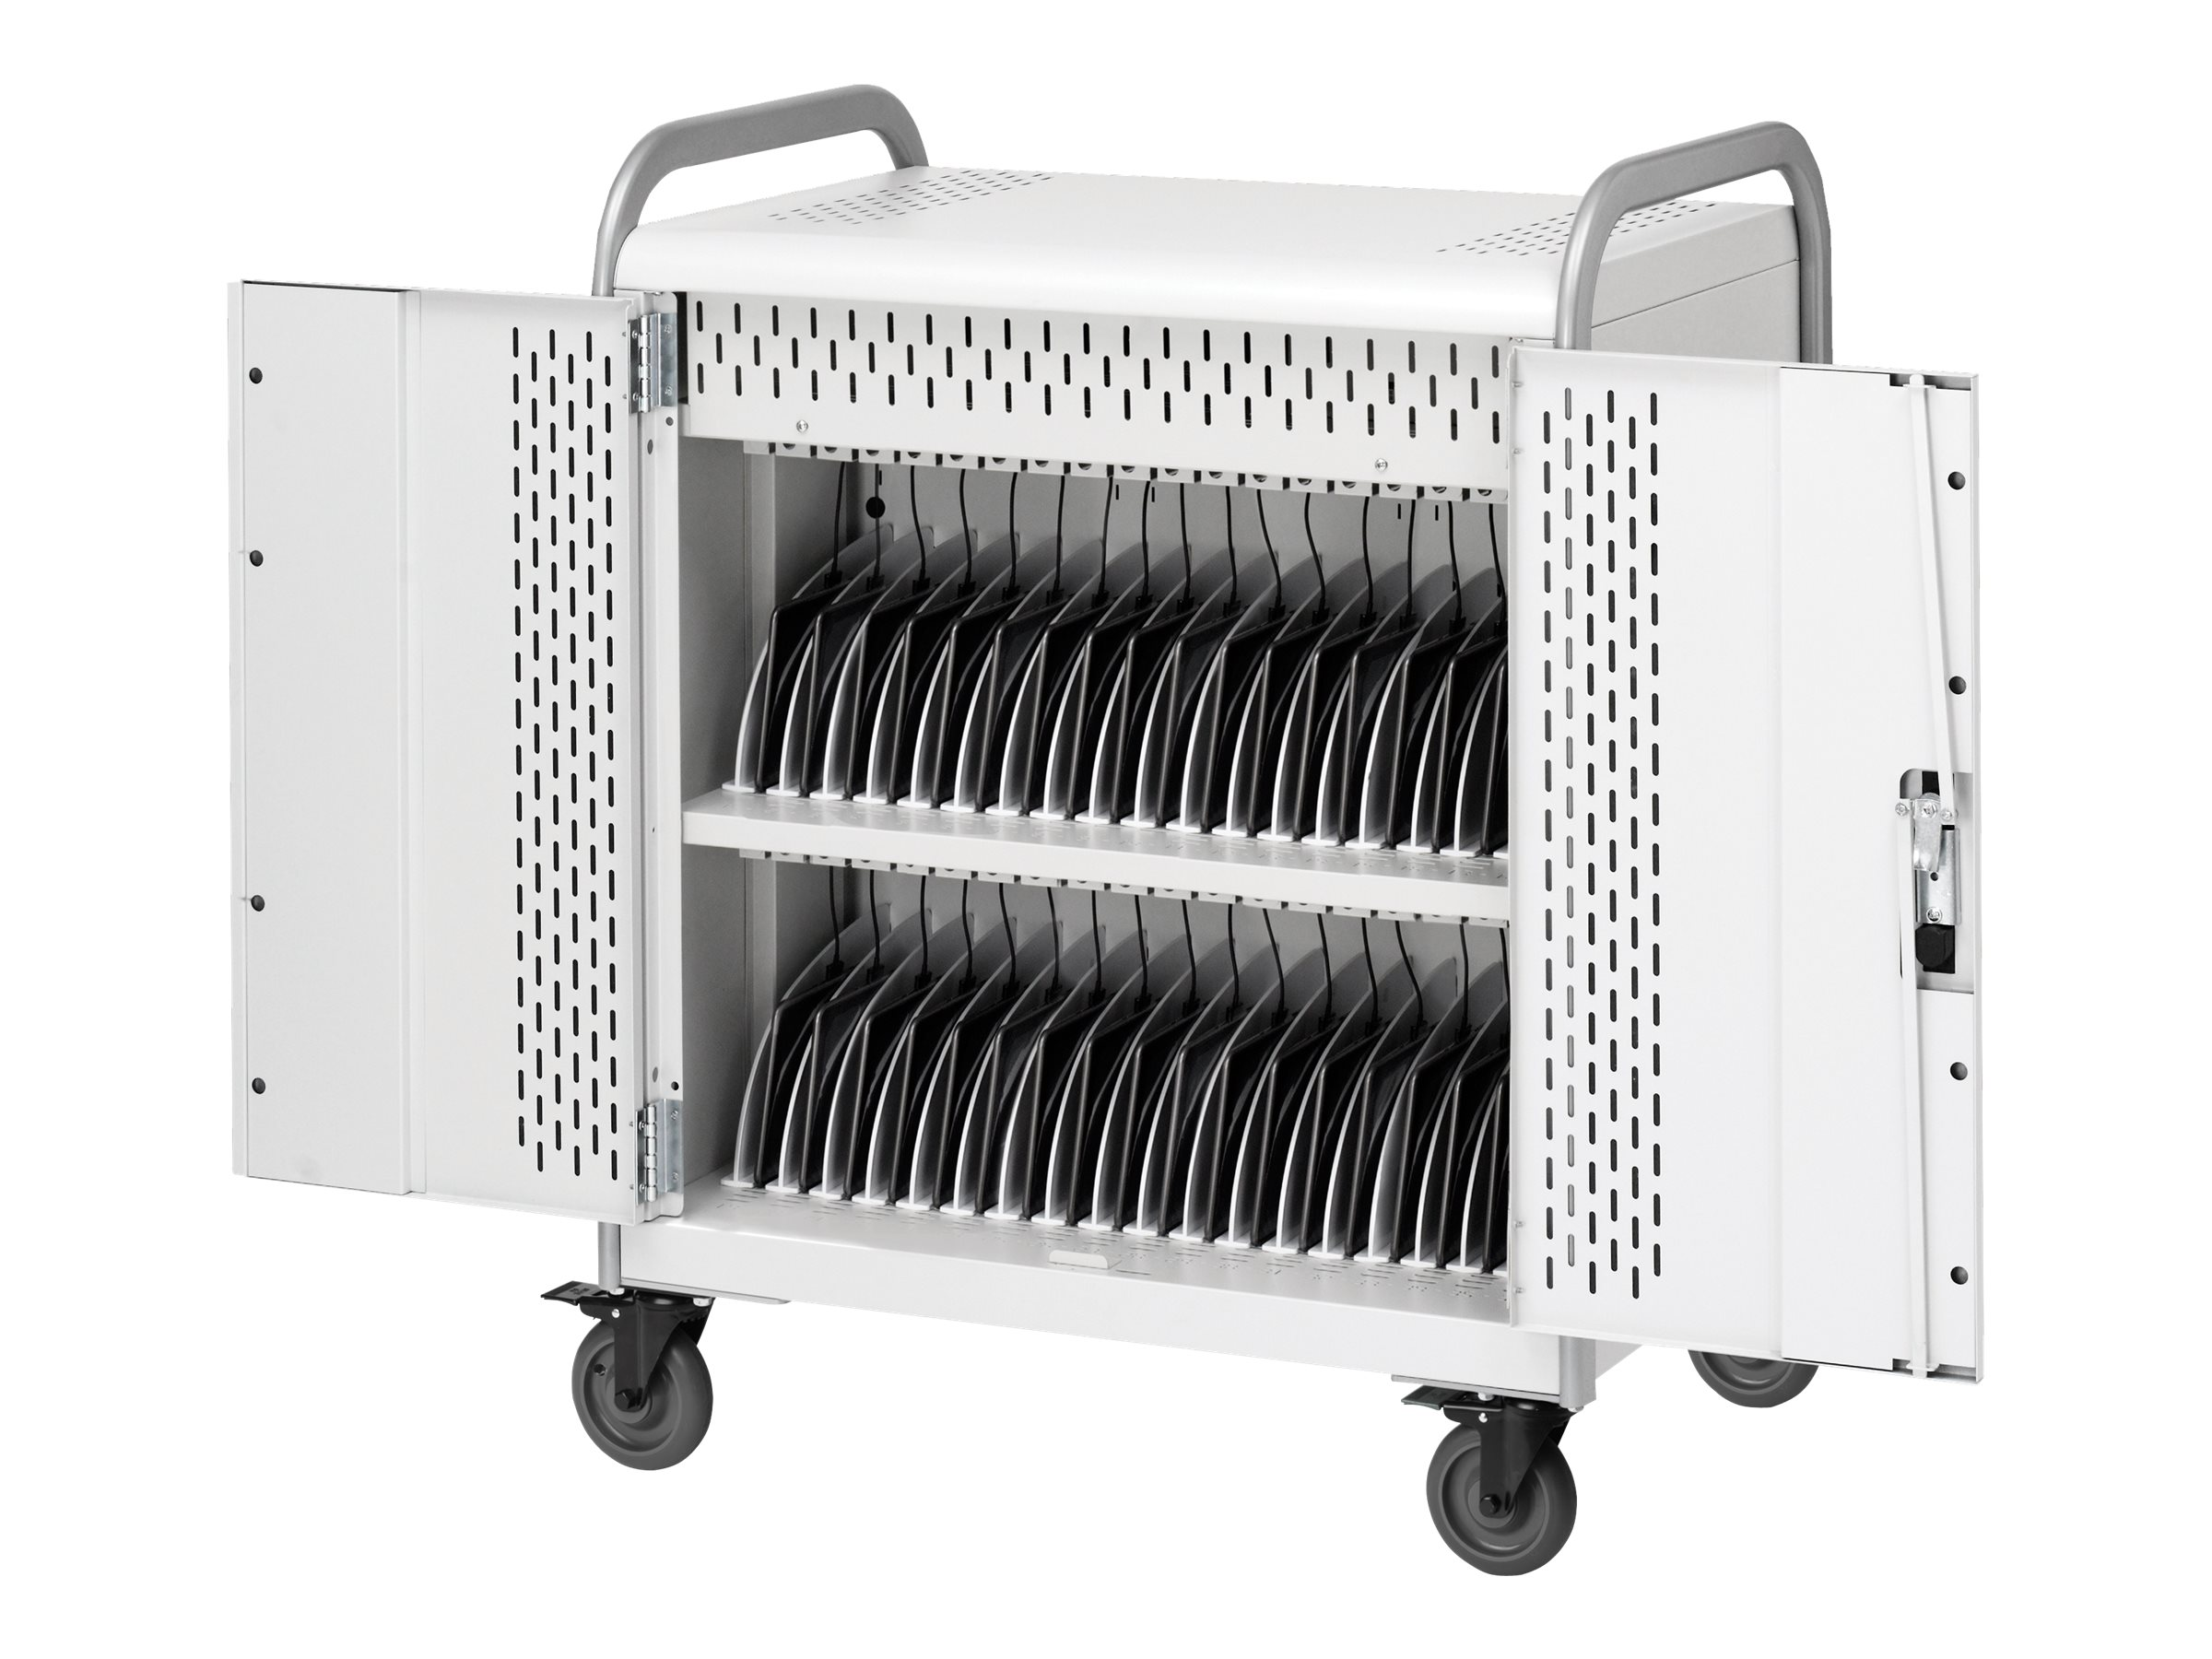 Bretford Manufacturing 36-Unit Chromebook Tablet Cart